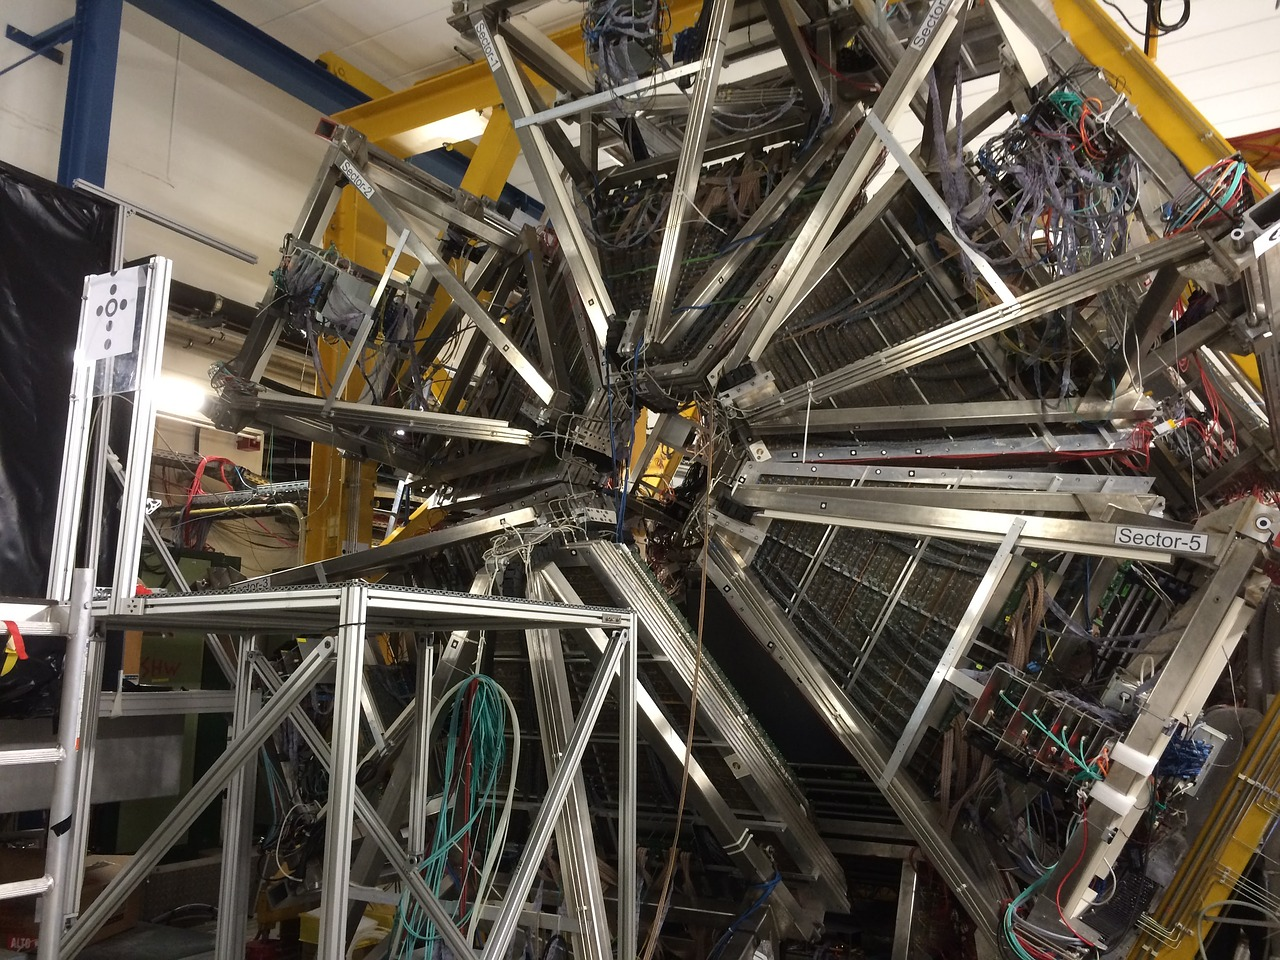 Studying subatomic entities through  manipulation in an accelerator